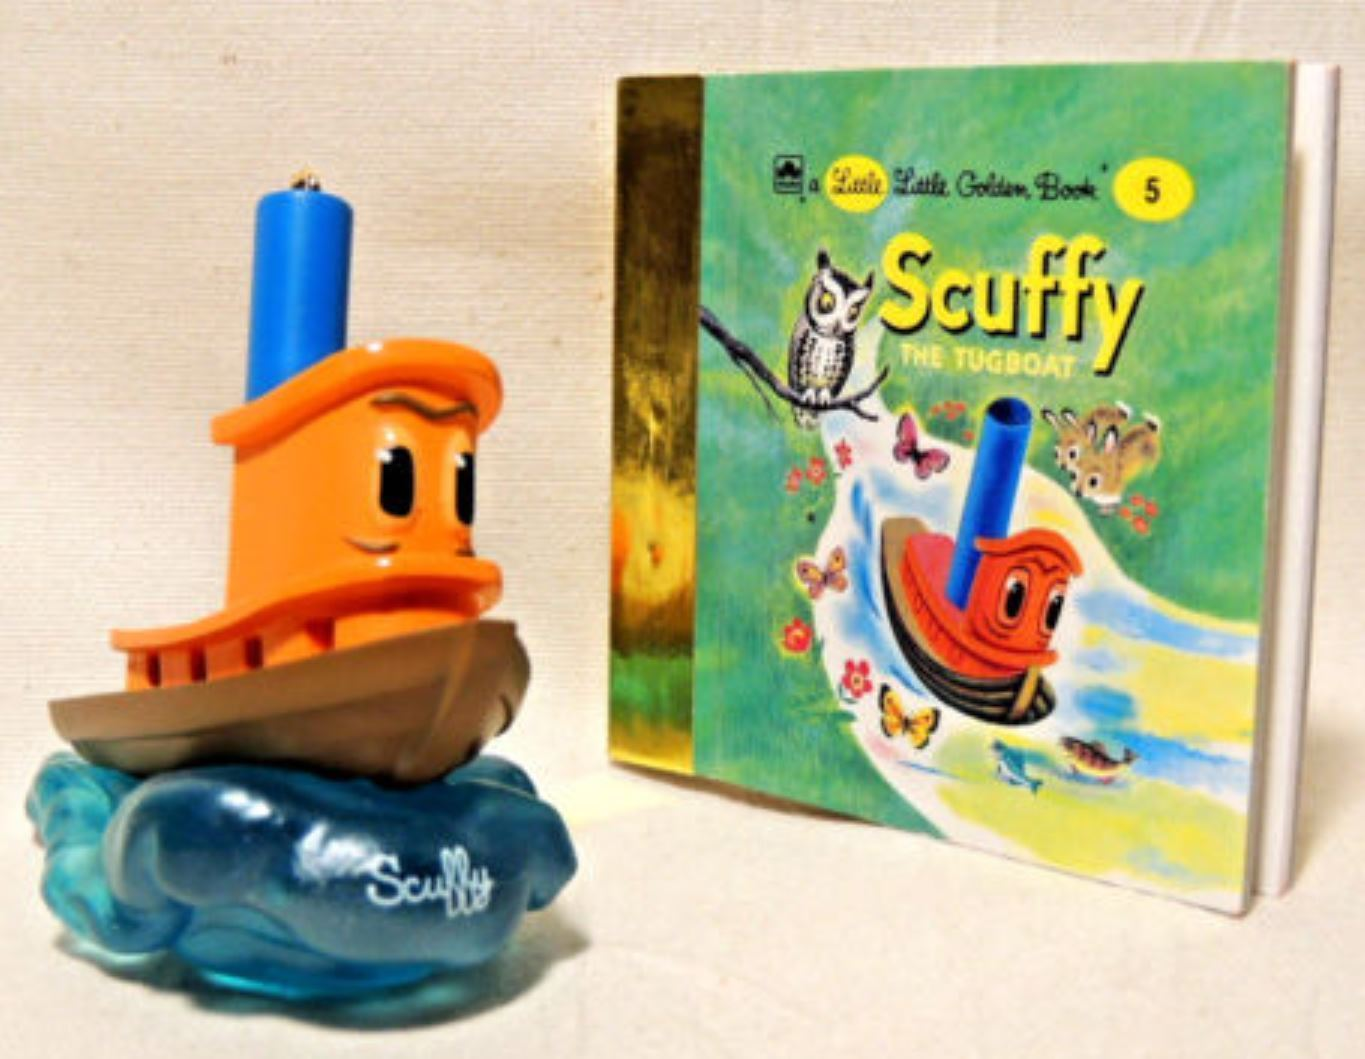 Primary image for Hallmark Scuffy the Tugboat  2000  Book and Boat  Holiday Ornament